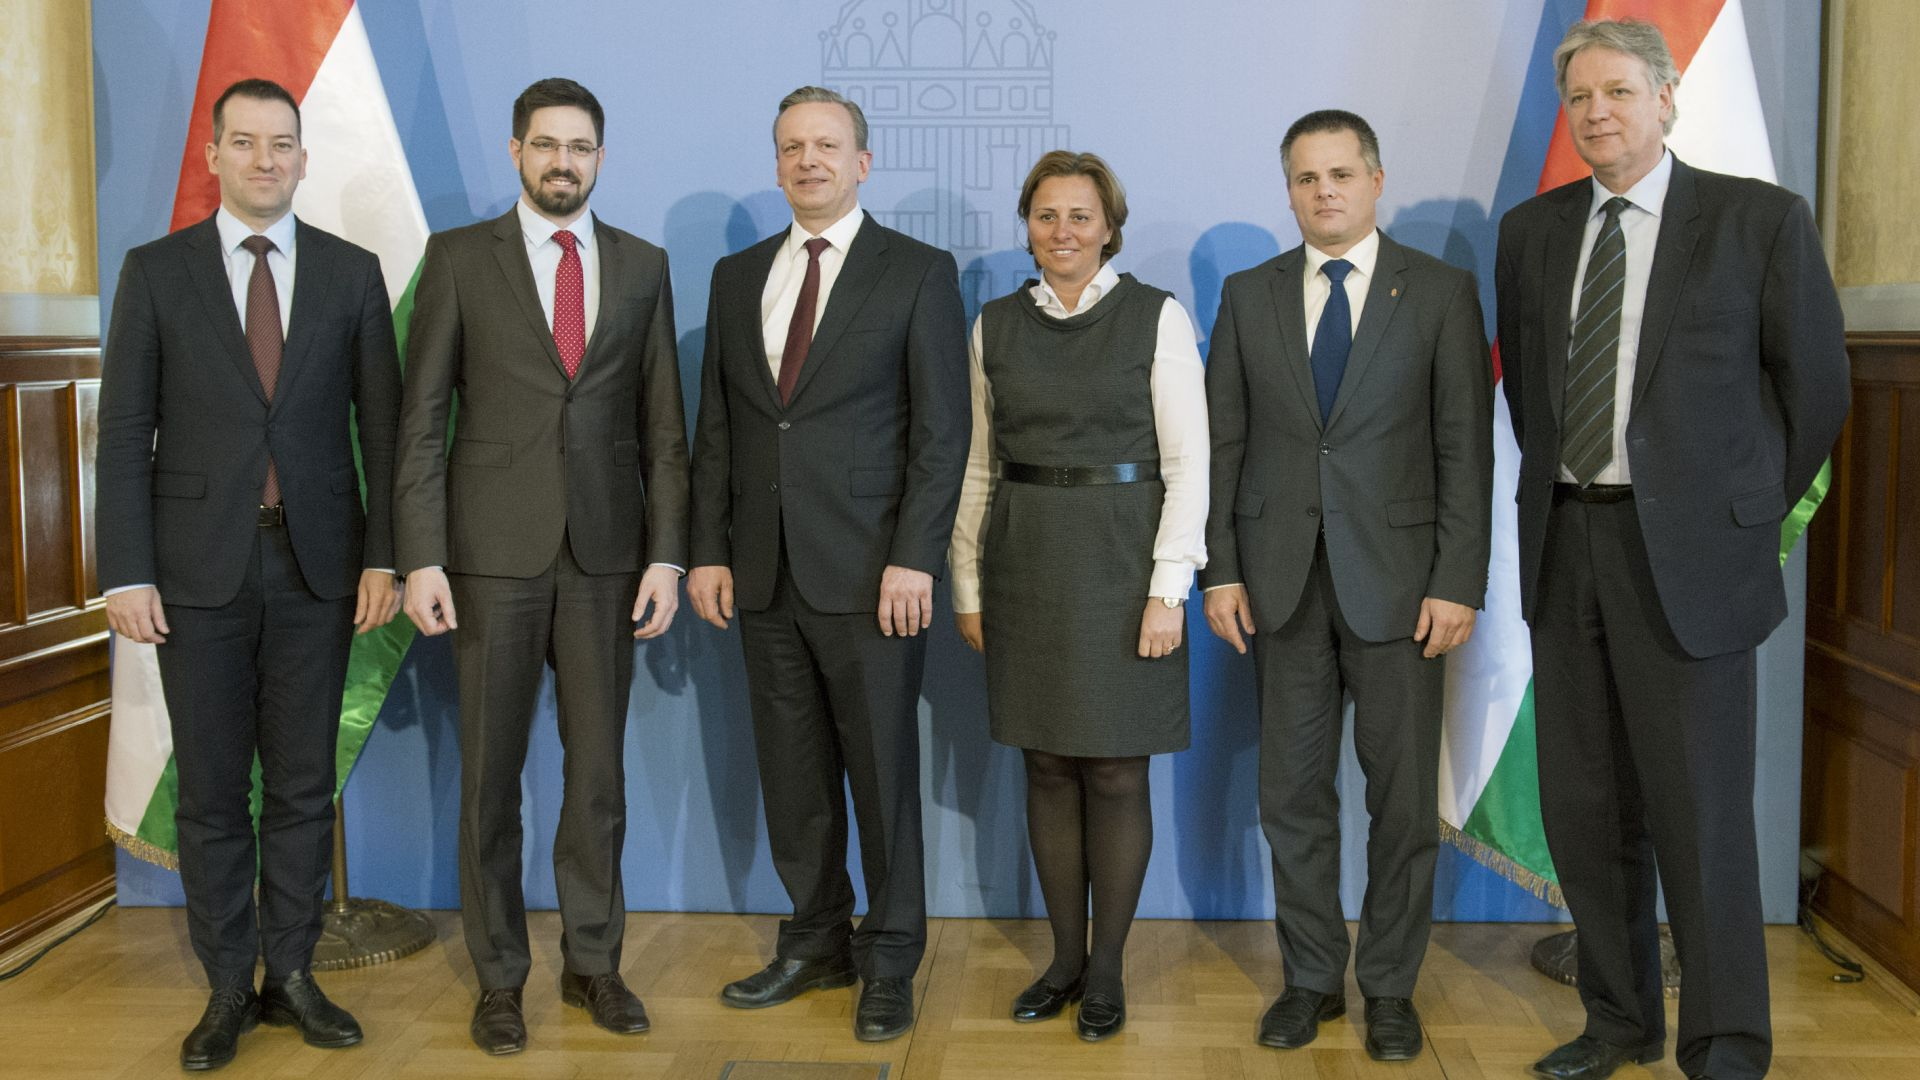 Decision makers of the company and the Hungarian government